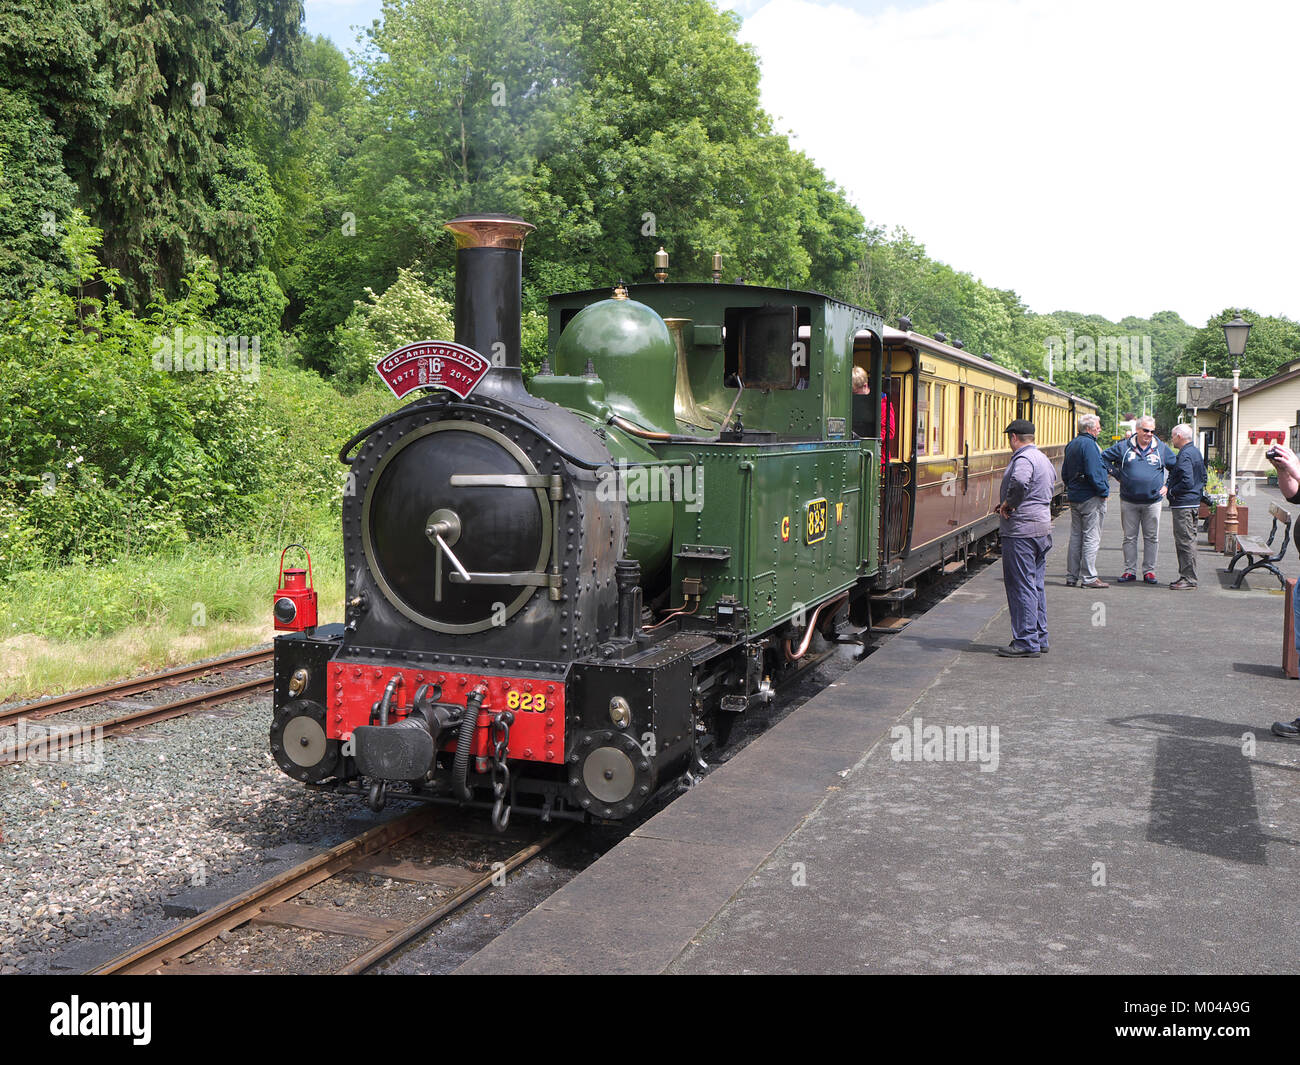 Train ready to depart Welshpool station - Stock Image